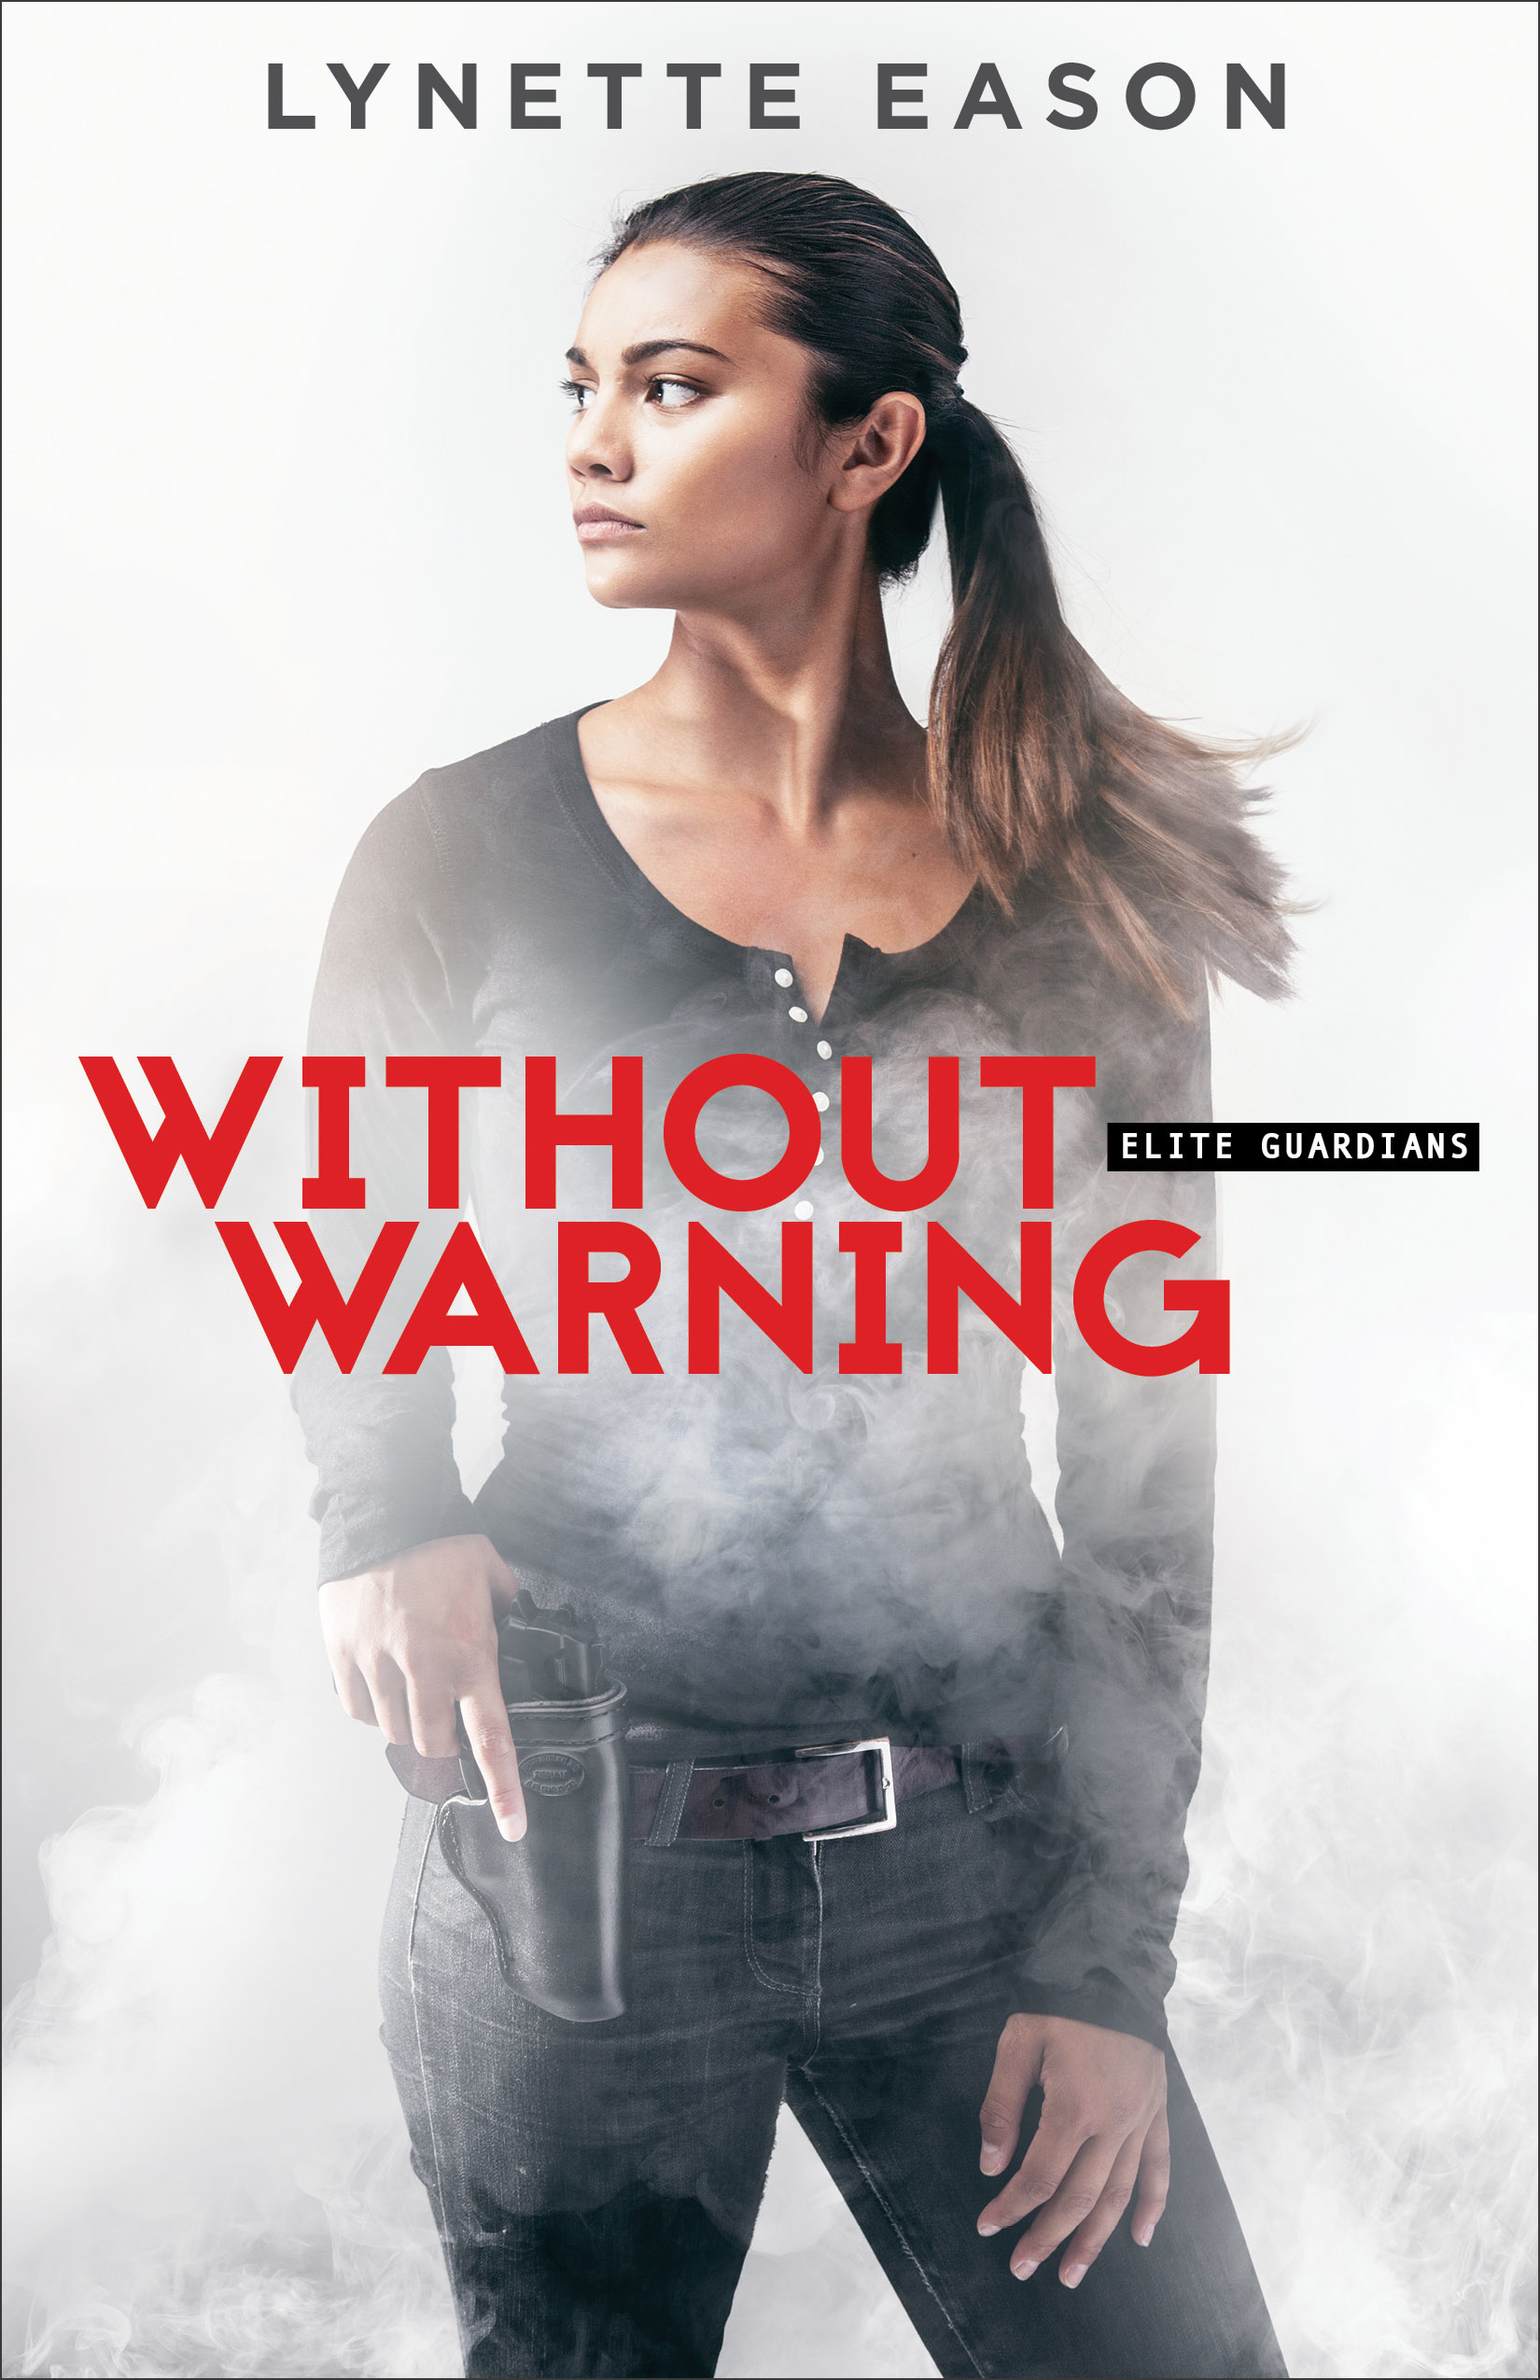 Book review of Without Warning by Lynette Eason (Revell) by papertapepins